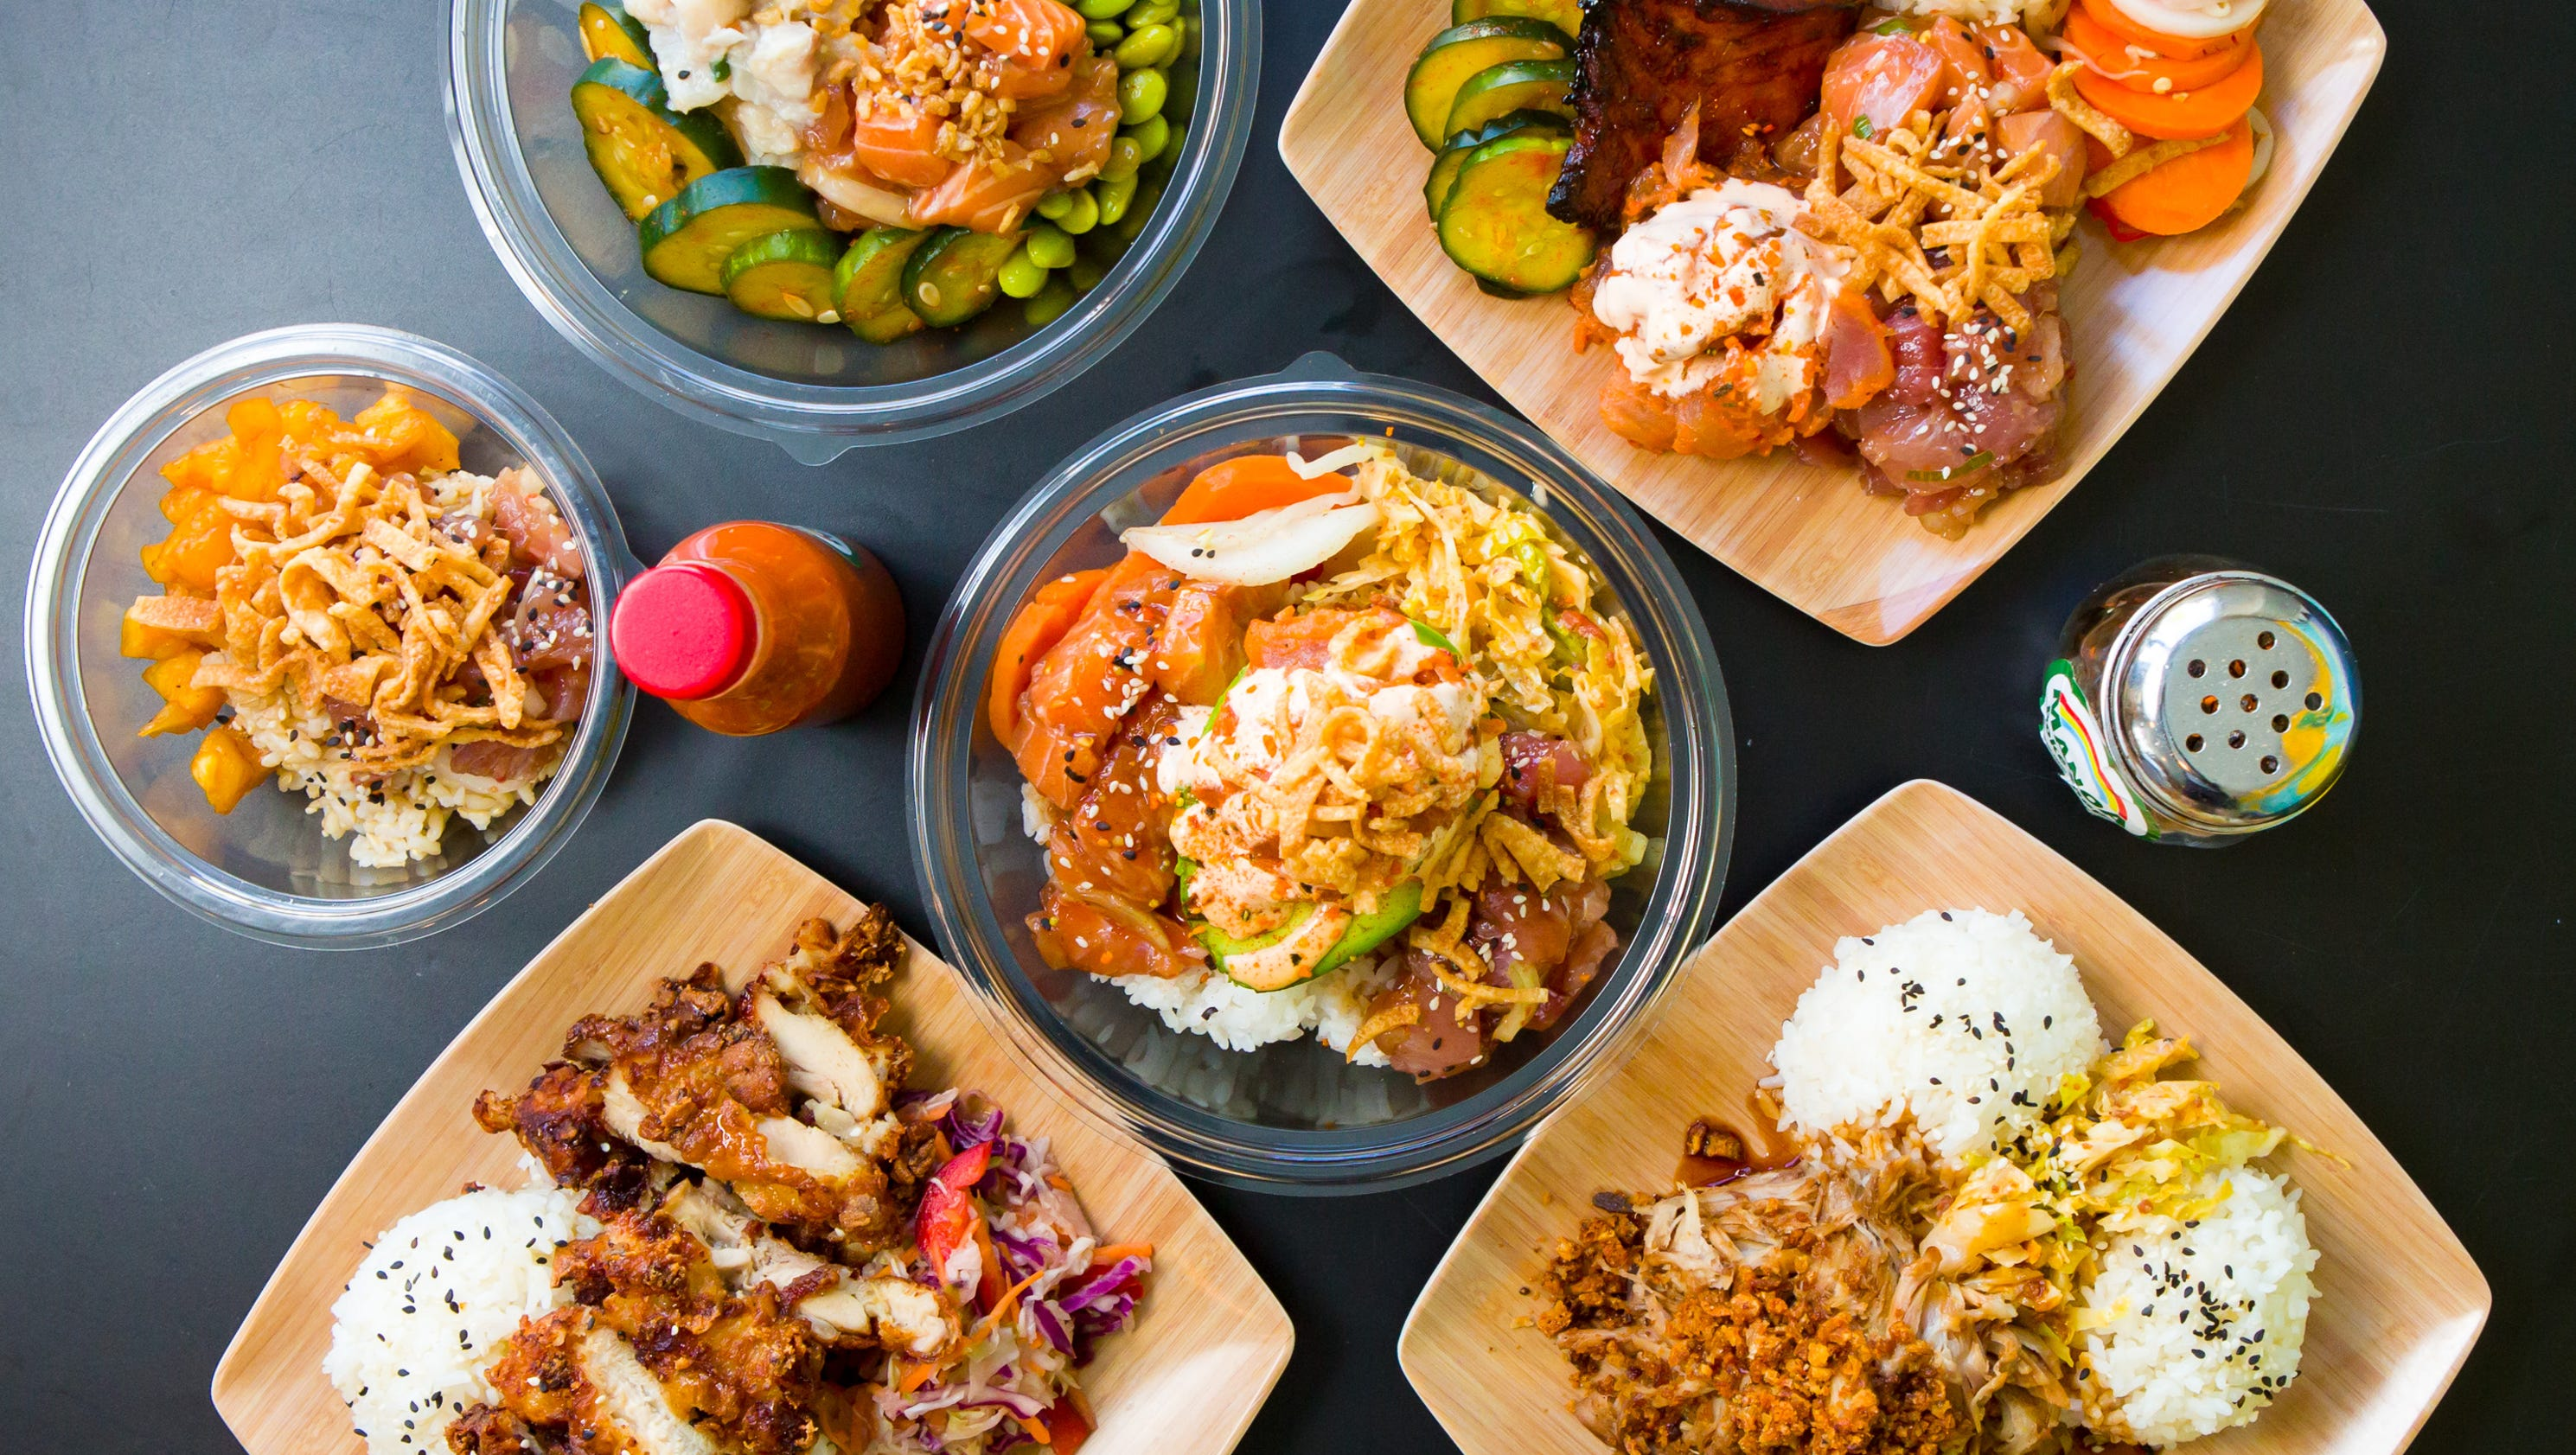 Food Delivery Open Now In Boston